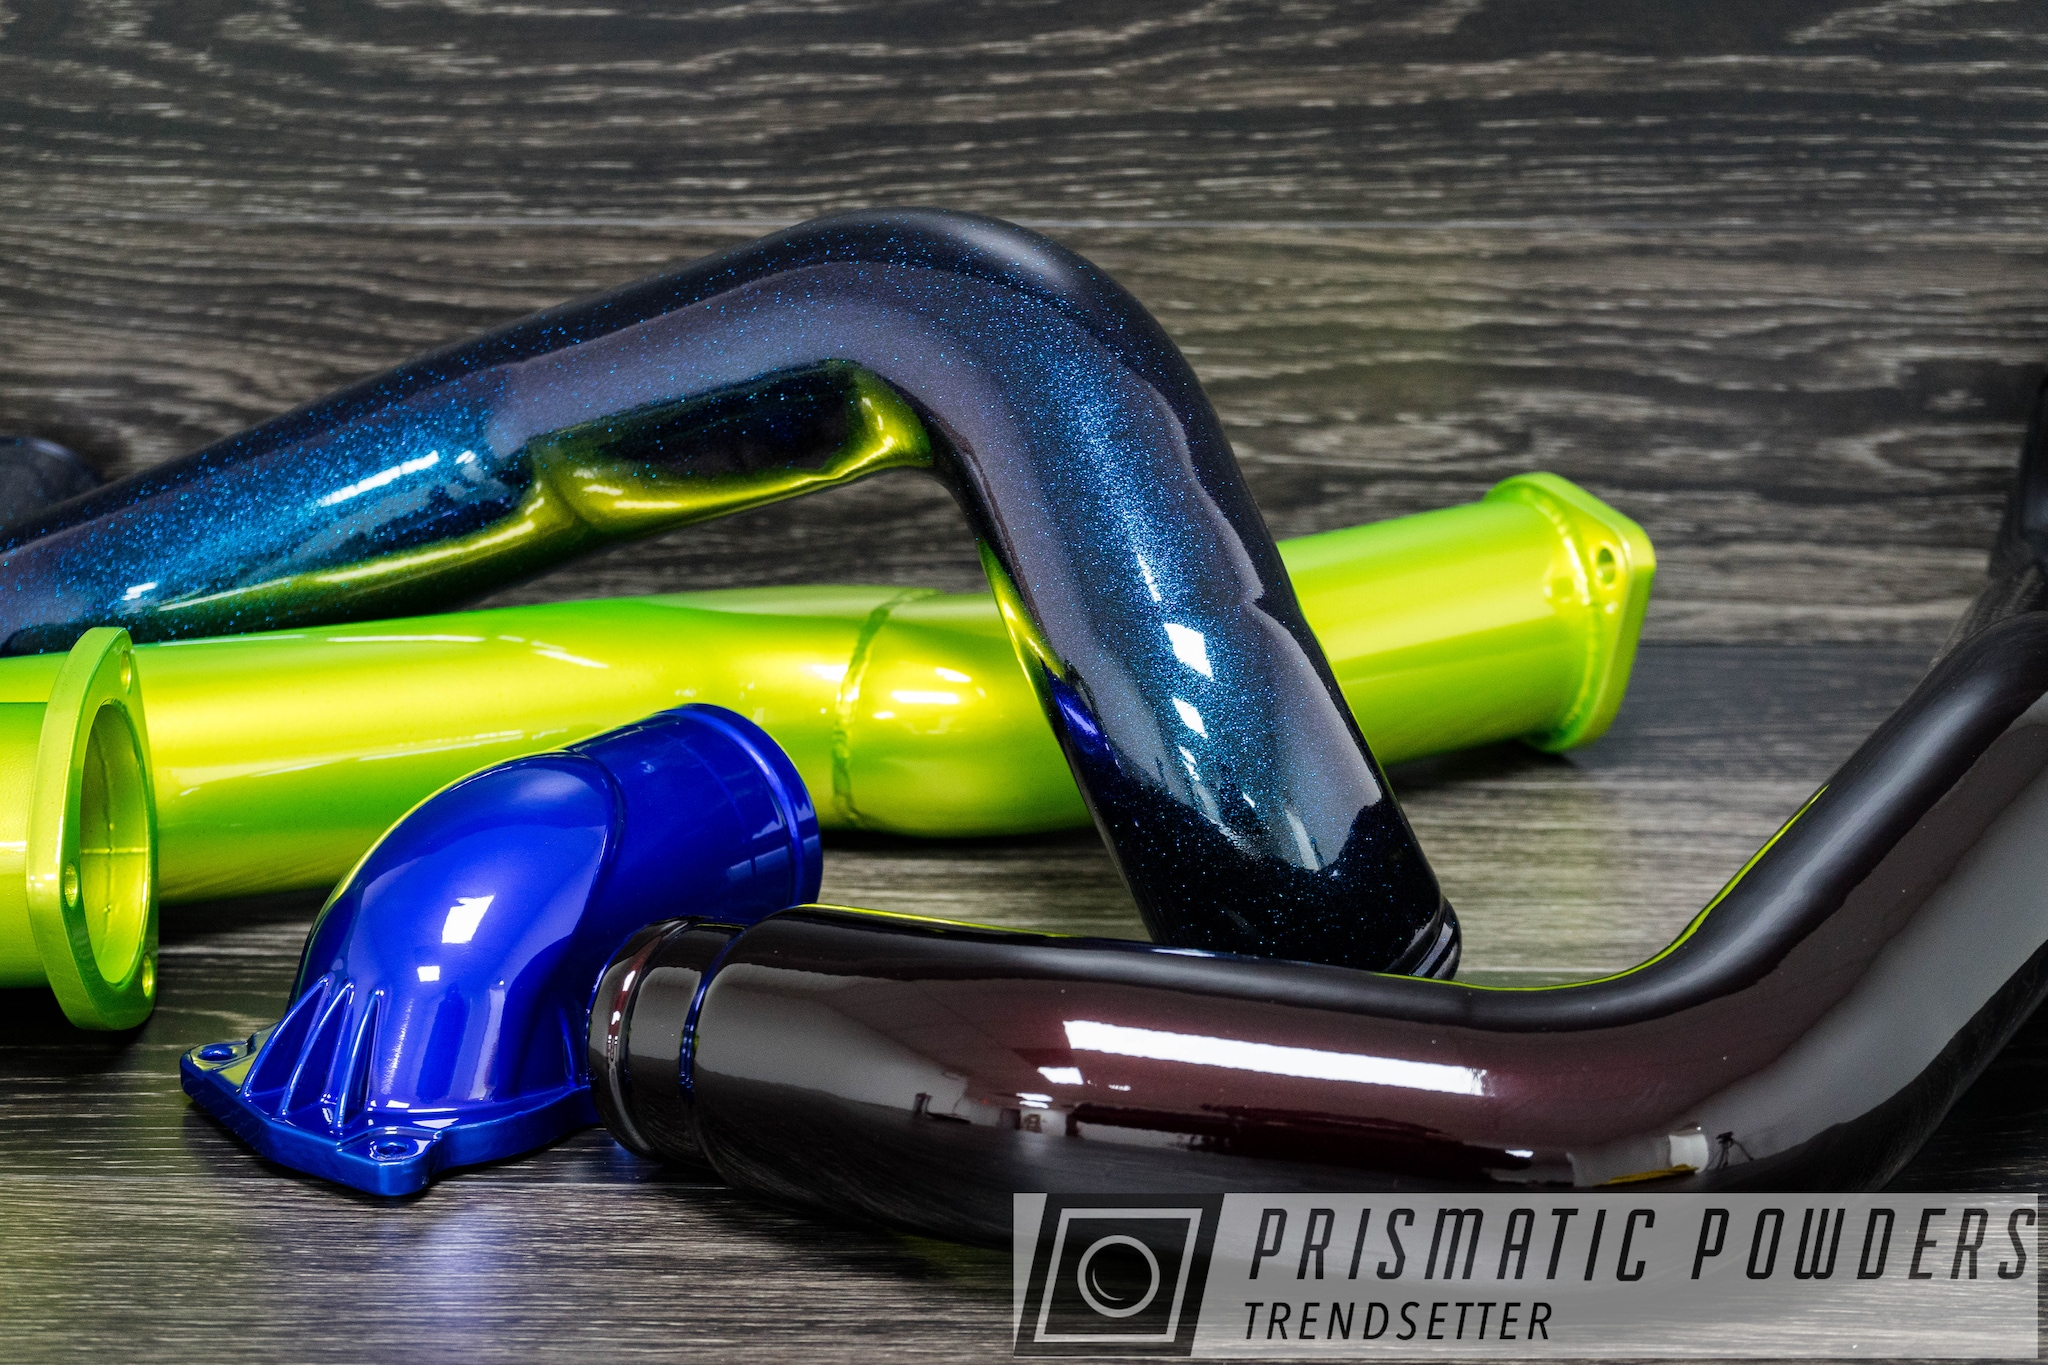 Powder Coating: Clear Vision PPS-2974,SUPER CHROME USS-4482,Thermostat housing,LOLLYPOP BLUE UPS-2502,Chameleon Teal PPB-5733,Clear Top Coat,Engine Parts,Intake Pipe,Illusion Shocker PMB-10050,Illusion Malbec PMB-6906